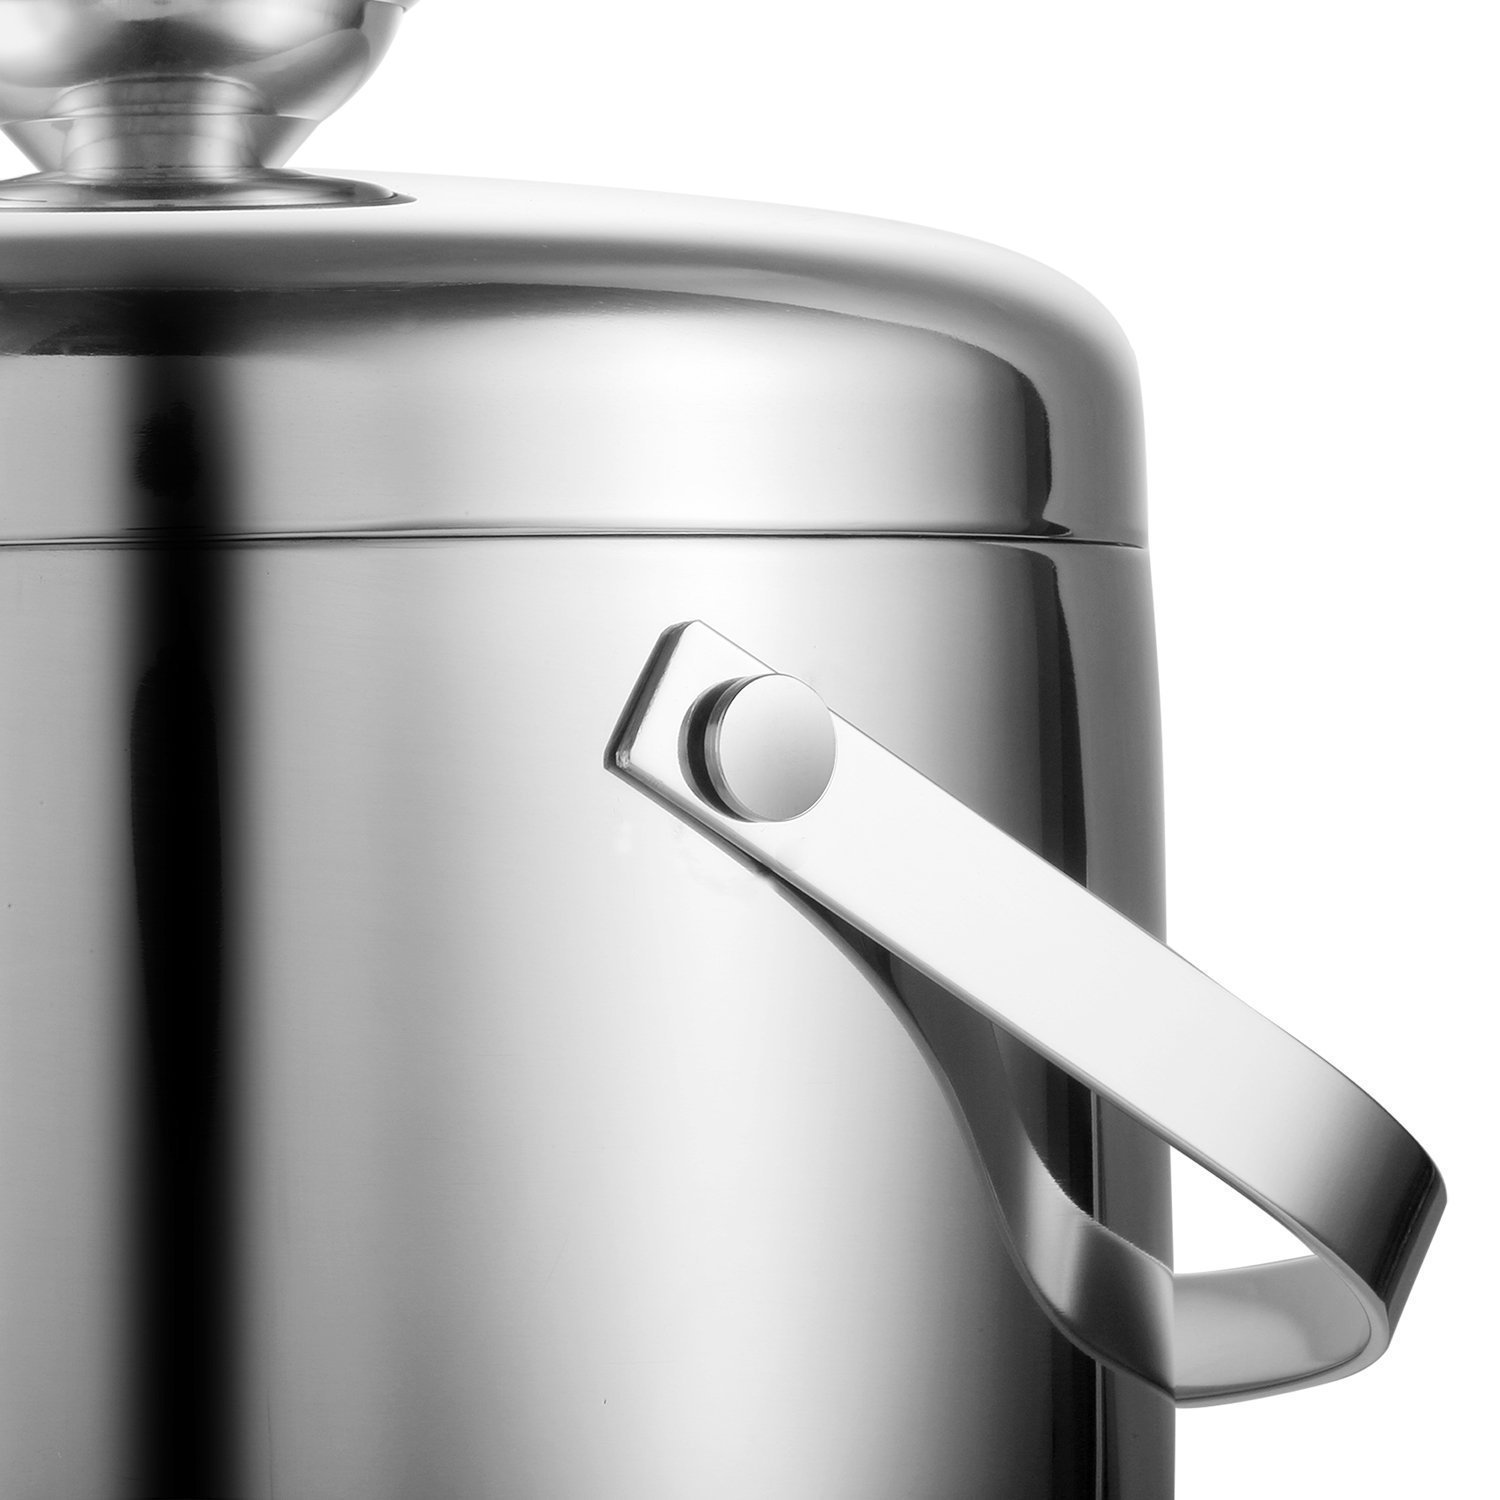 Insulated Ice Bucket,Stainless Steel Double Wall Ice Bucket with Lid and Tongs,2.8-Litre,Silver by Fortune Candy (Image #9)